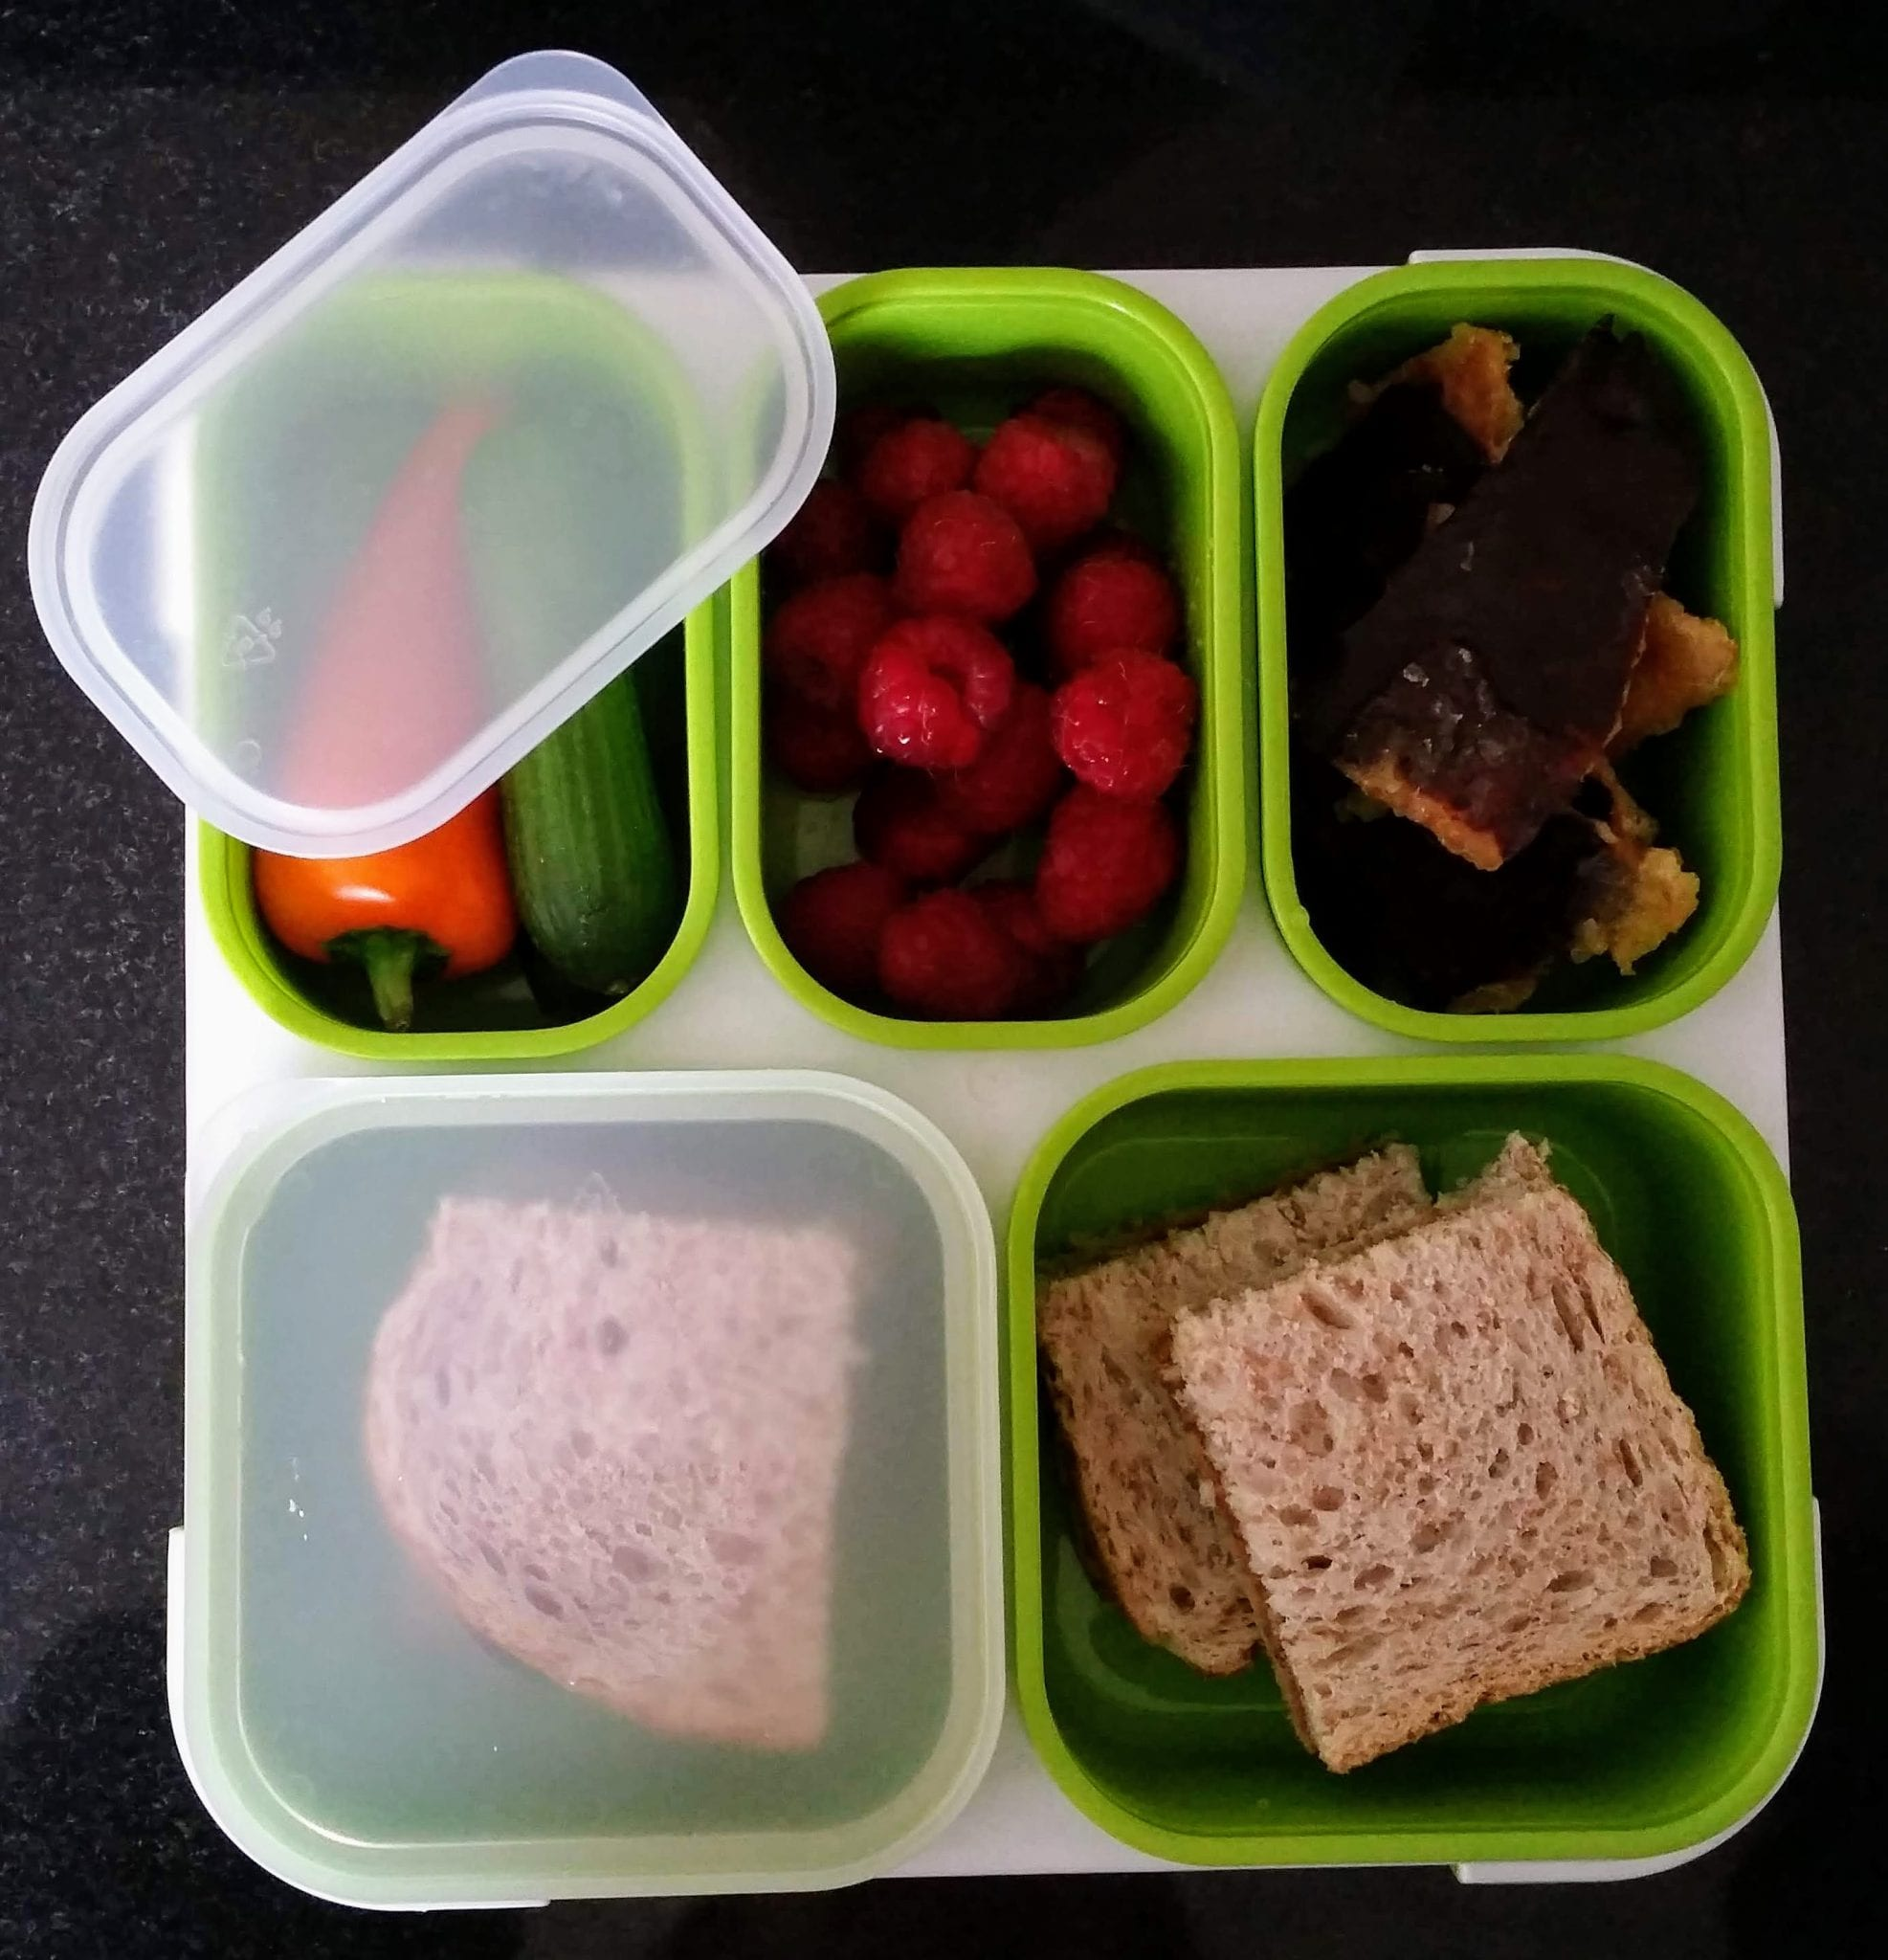 A green 'beta' lunch box containing mini peppers and cucumber, raspberries, chocolate brittle and sandwiches in the various compartments